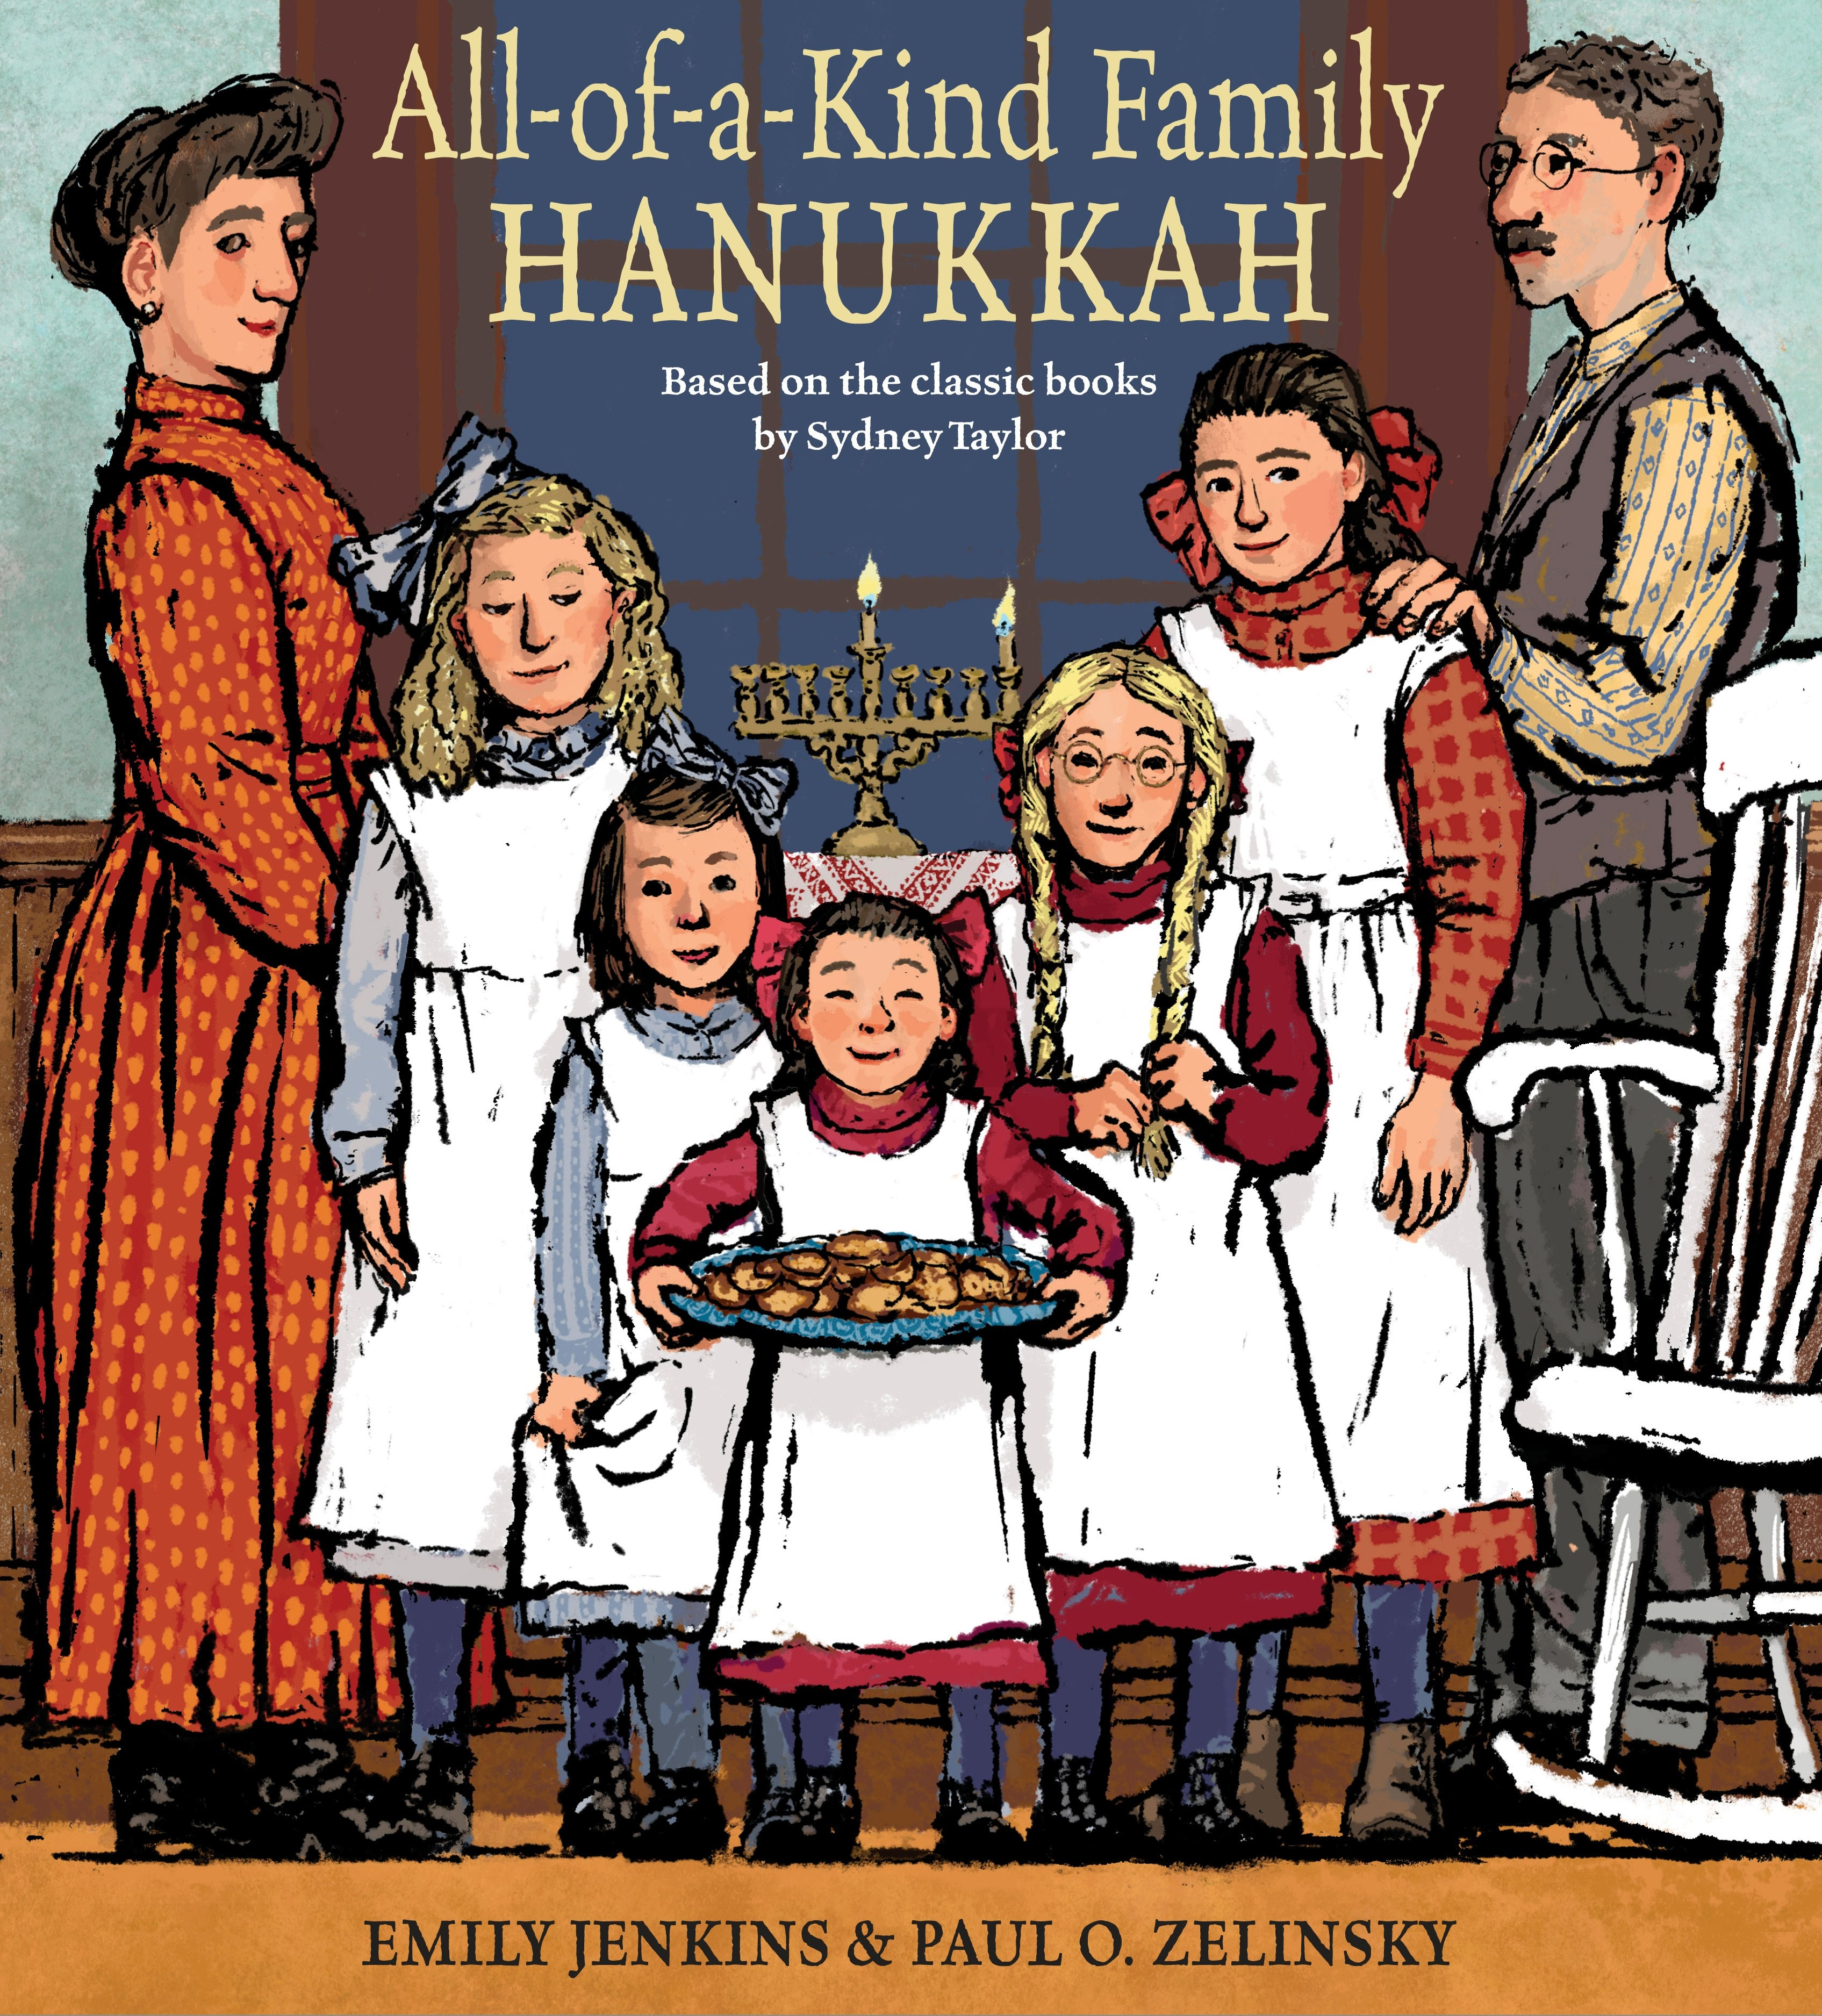 Sunday Story Time with Emily Jenkins & Paul O. Zelinsky (Author & Illustrator of All-of-a-Kind Family Hanukkah)